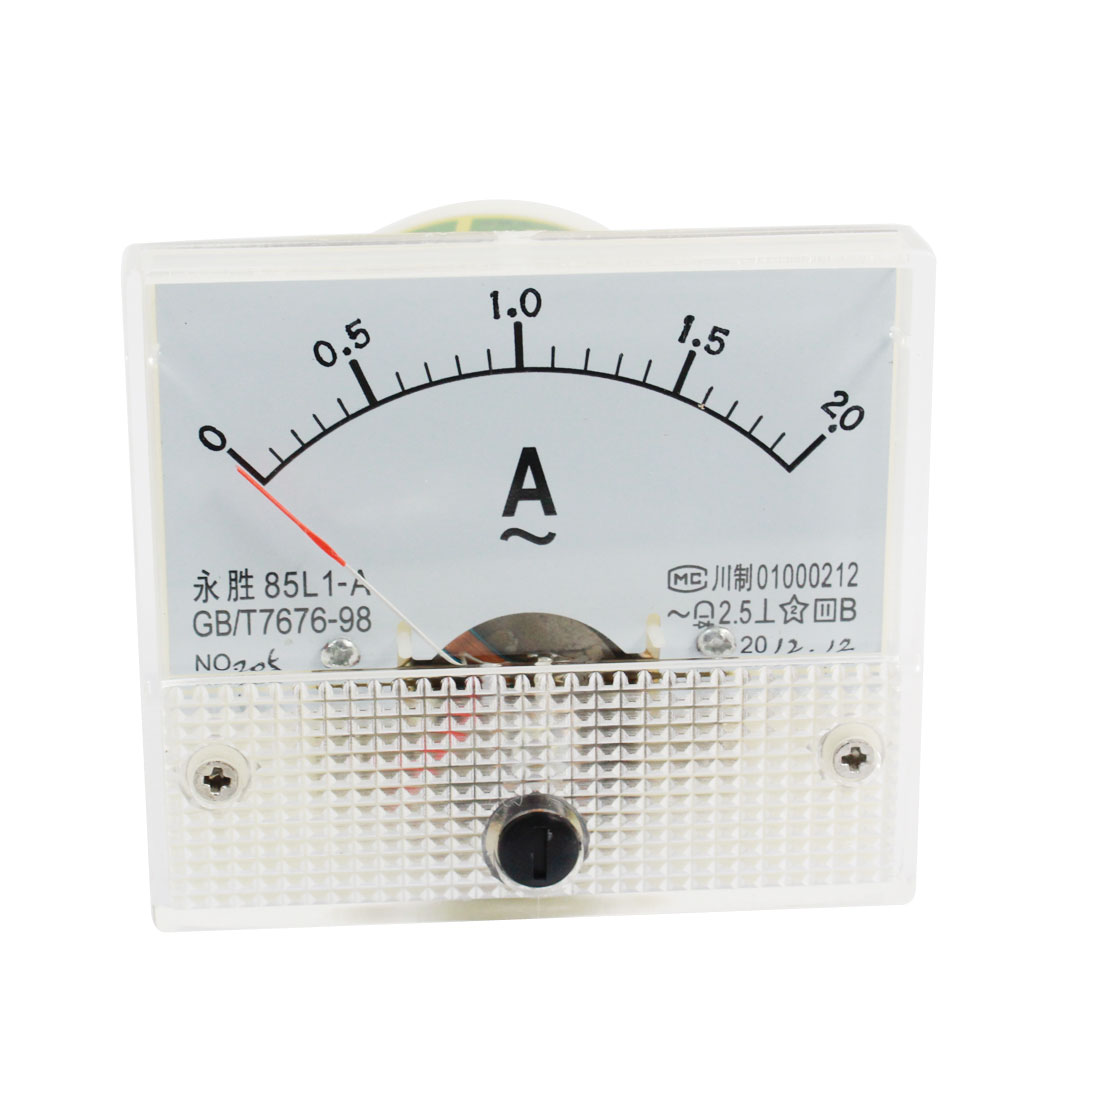 Analog Panel Ammeter Gauge DC 0 - 2.0A Measuring Range 2.5 Accuracy